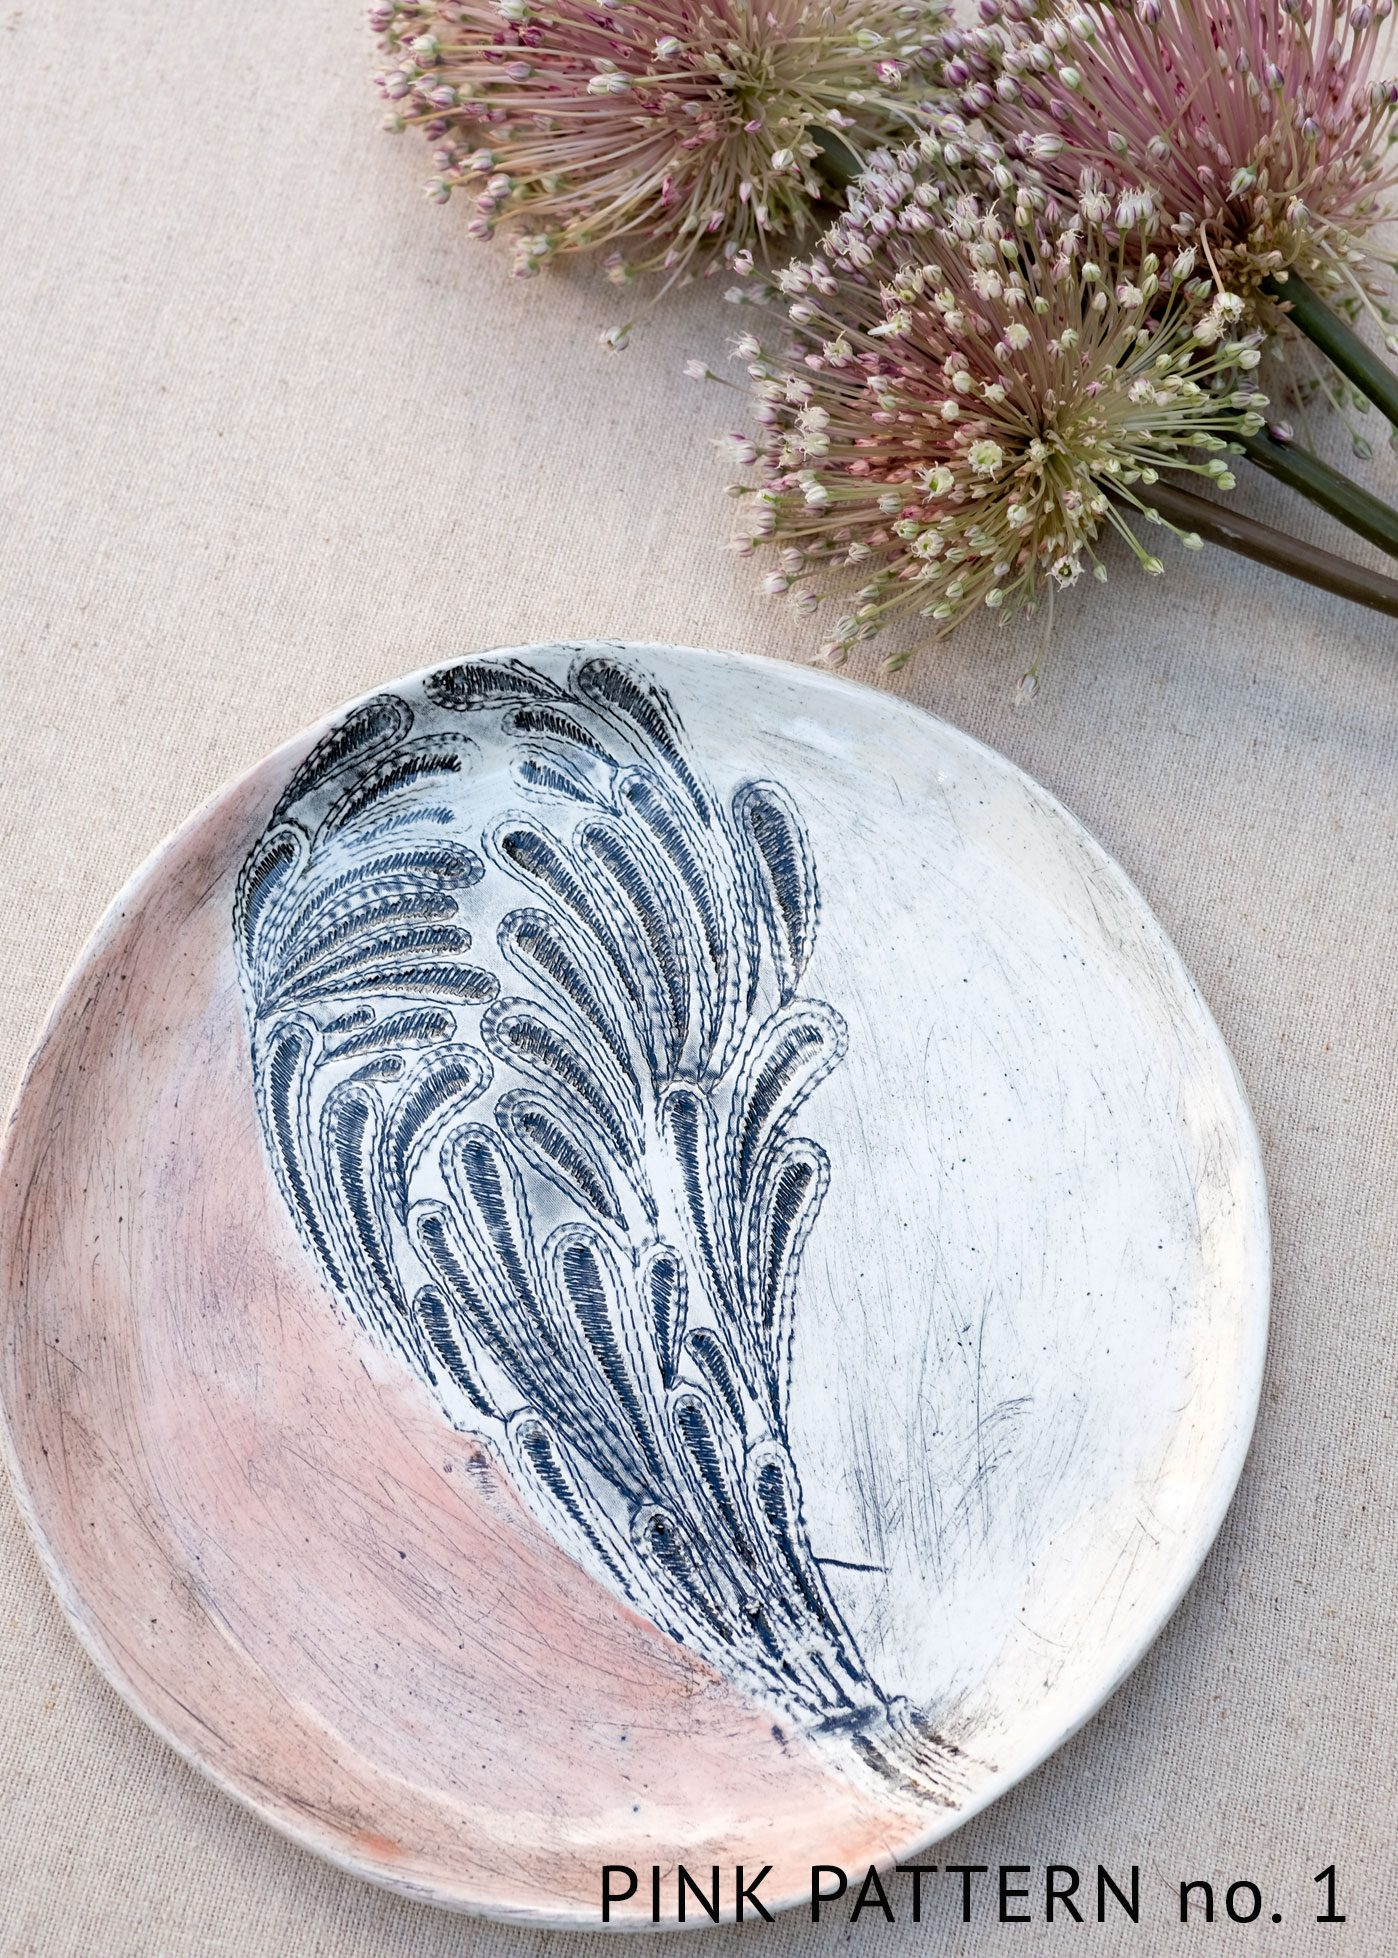 Patterned ceramic plate